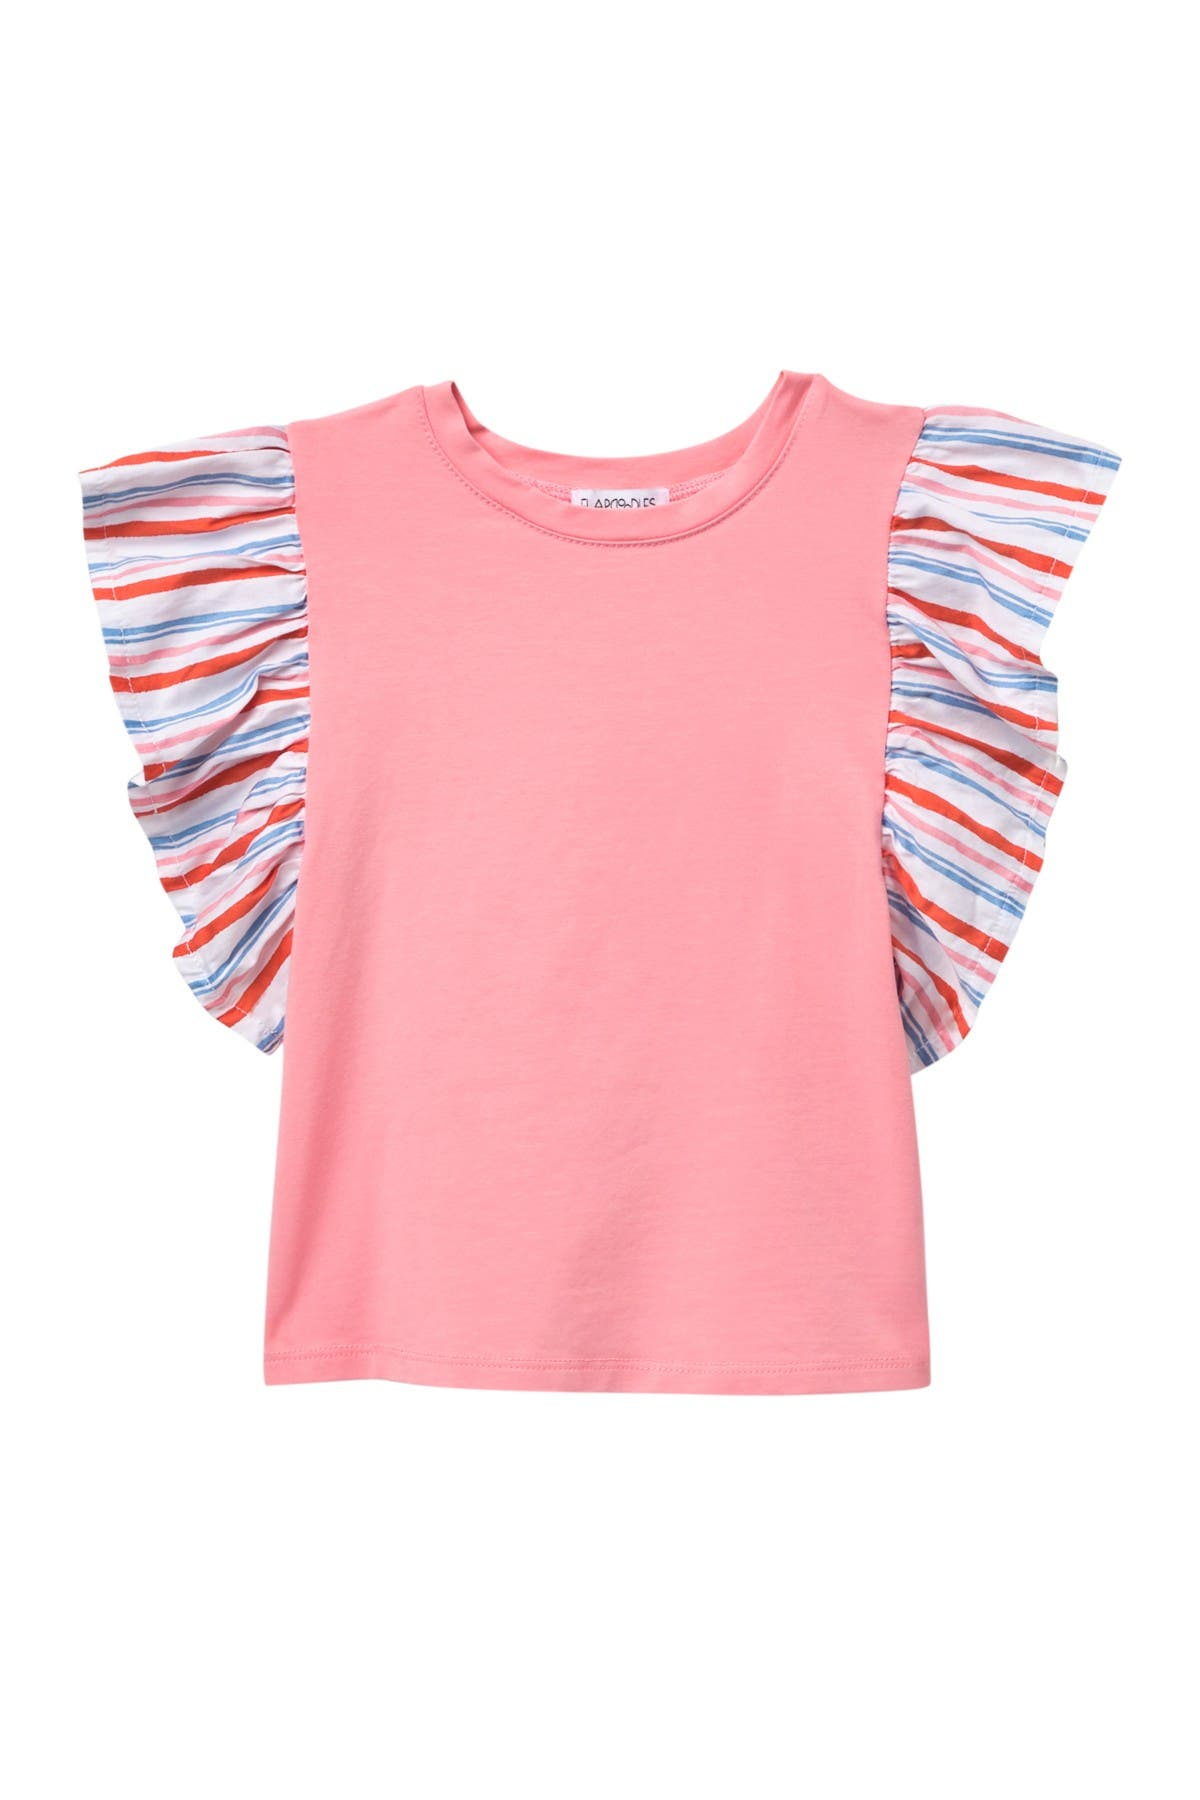 Flapdoodles Girls Flutter Sleeve Top